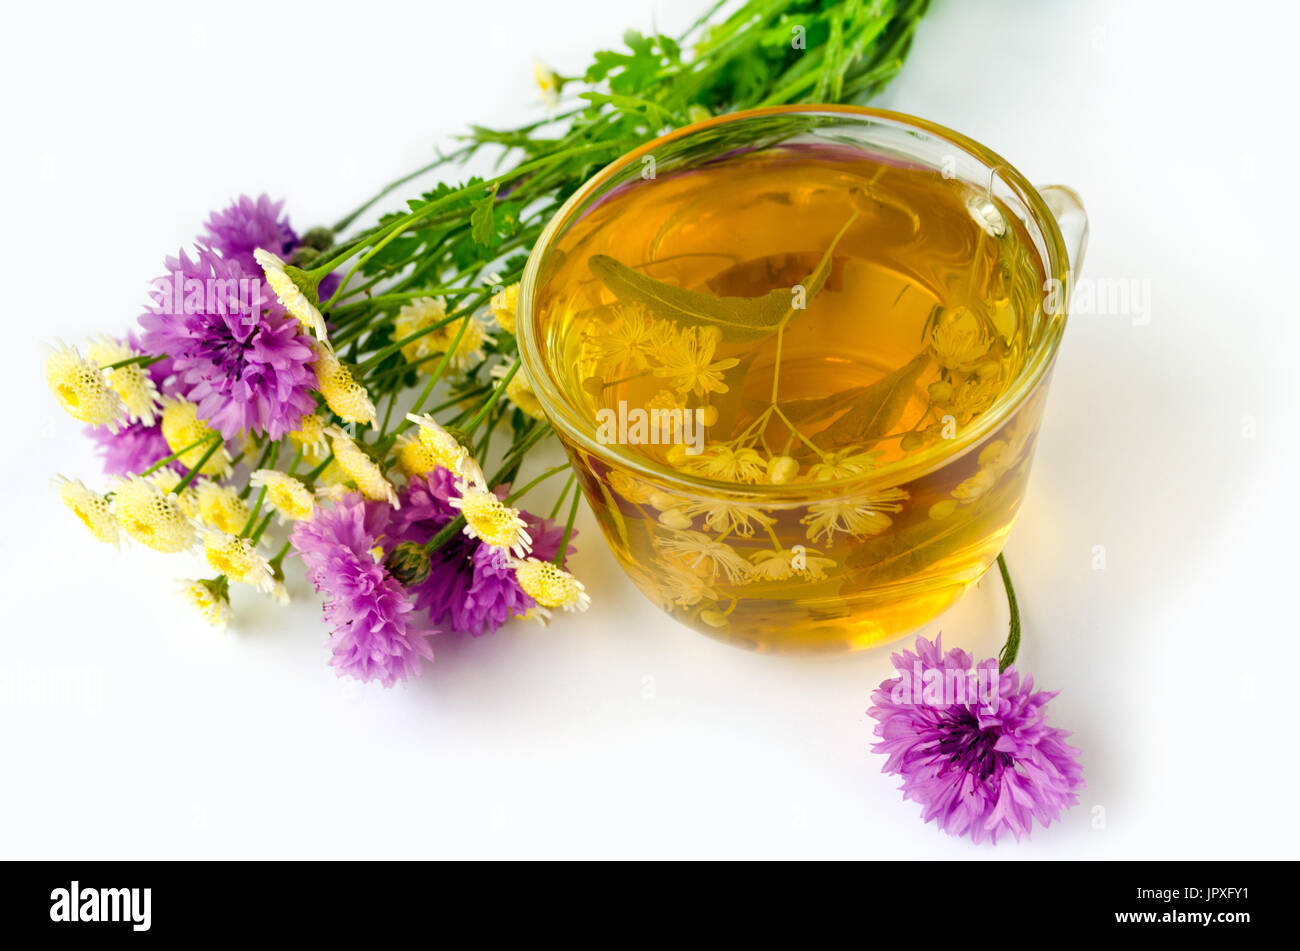 Natural therapy - Lime Tea in a transparent cup on a white background and a bouquet of wildflowers - Stock Image